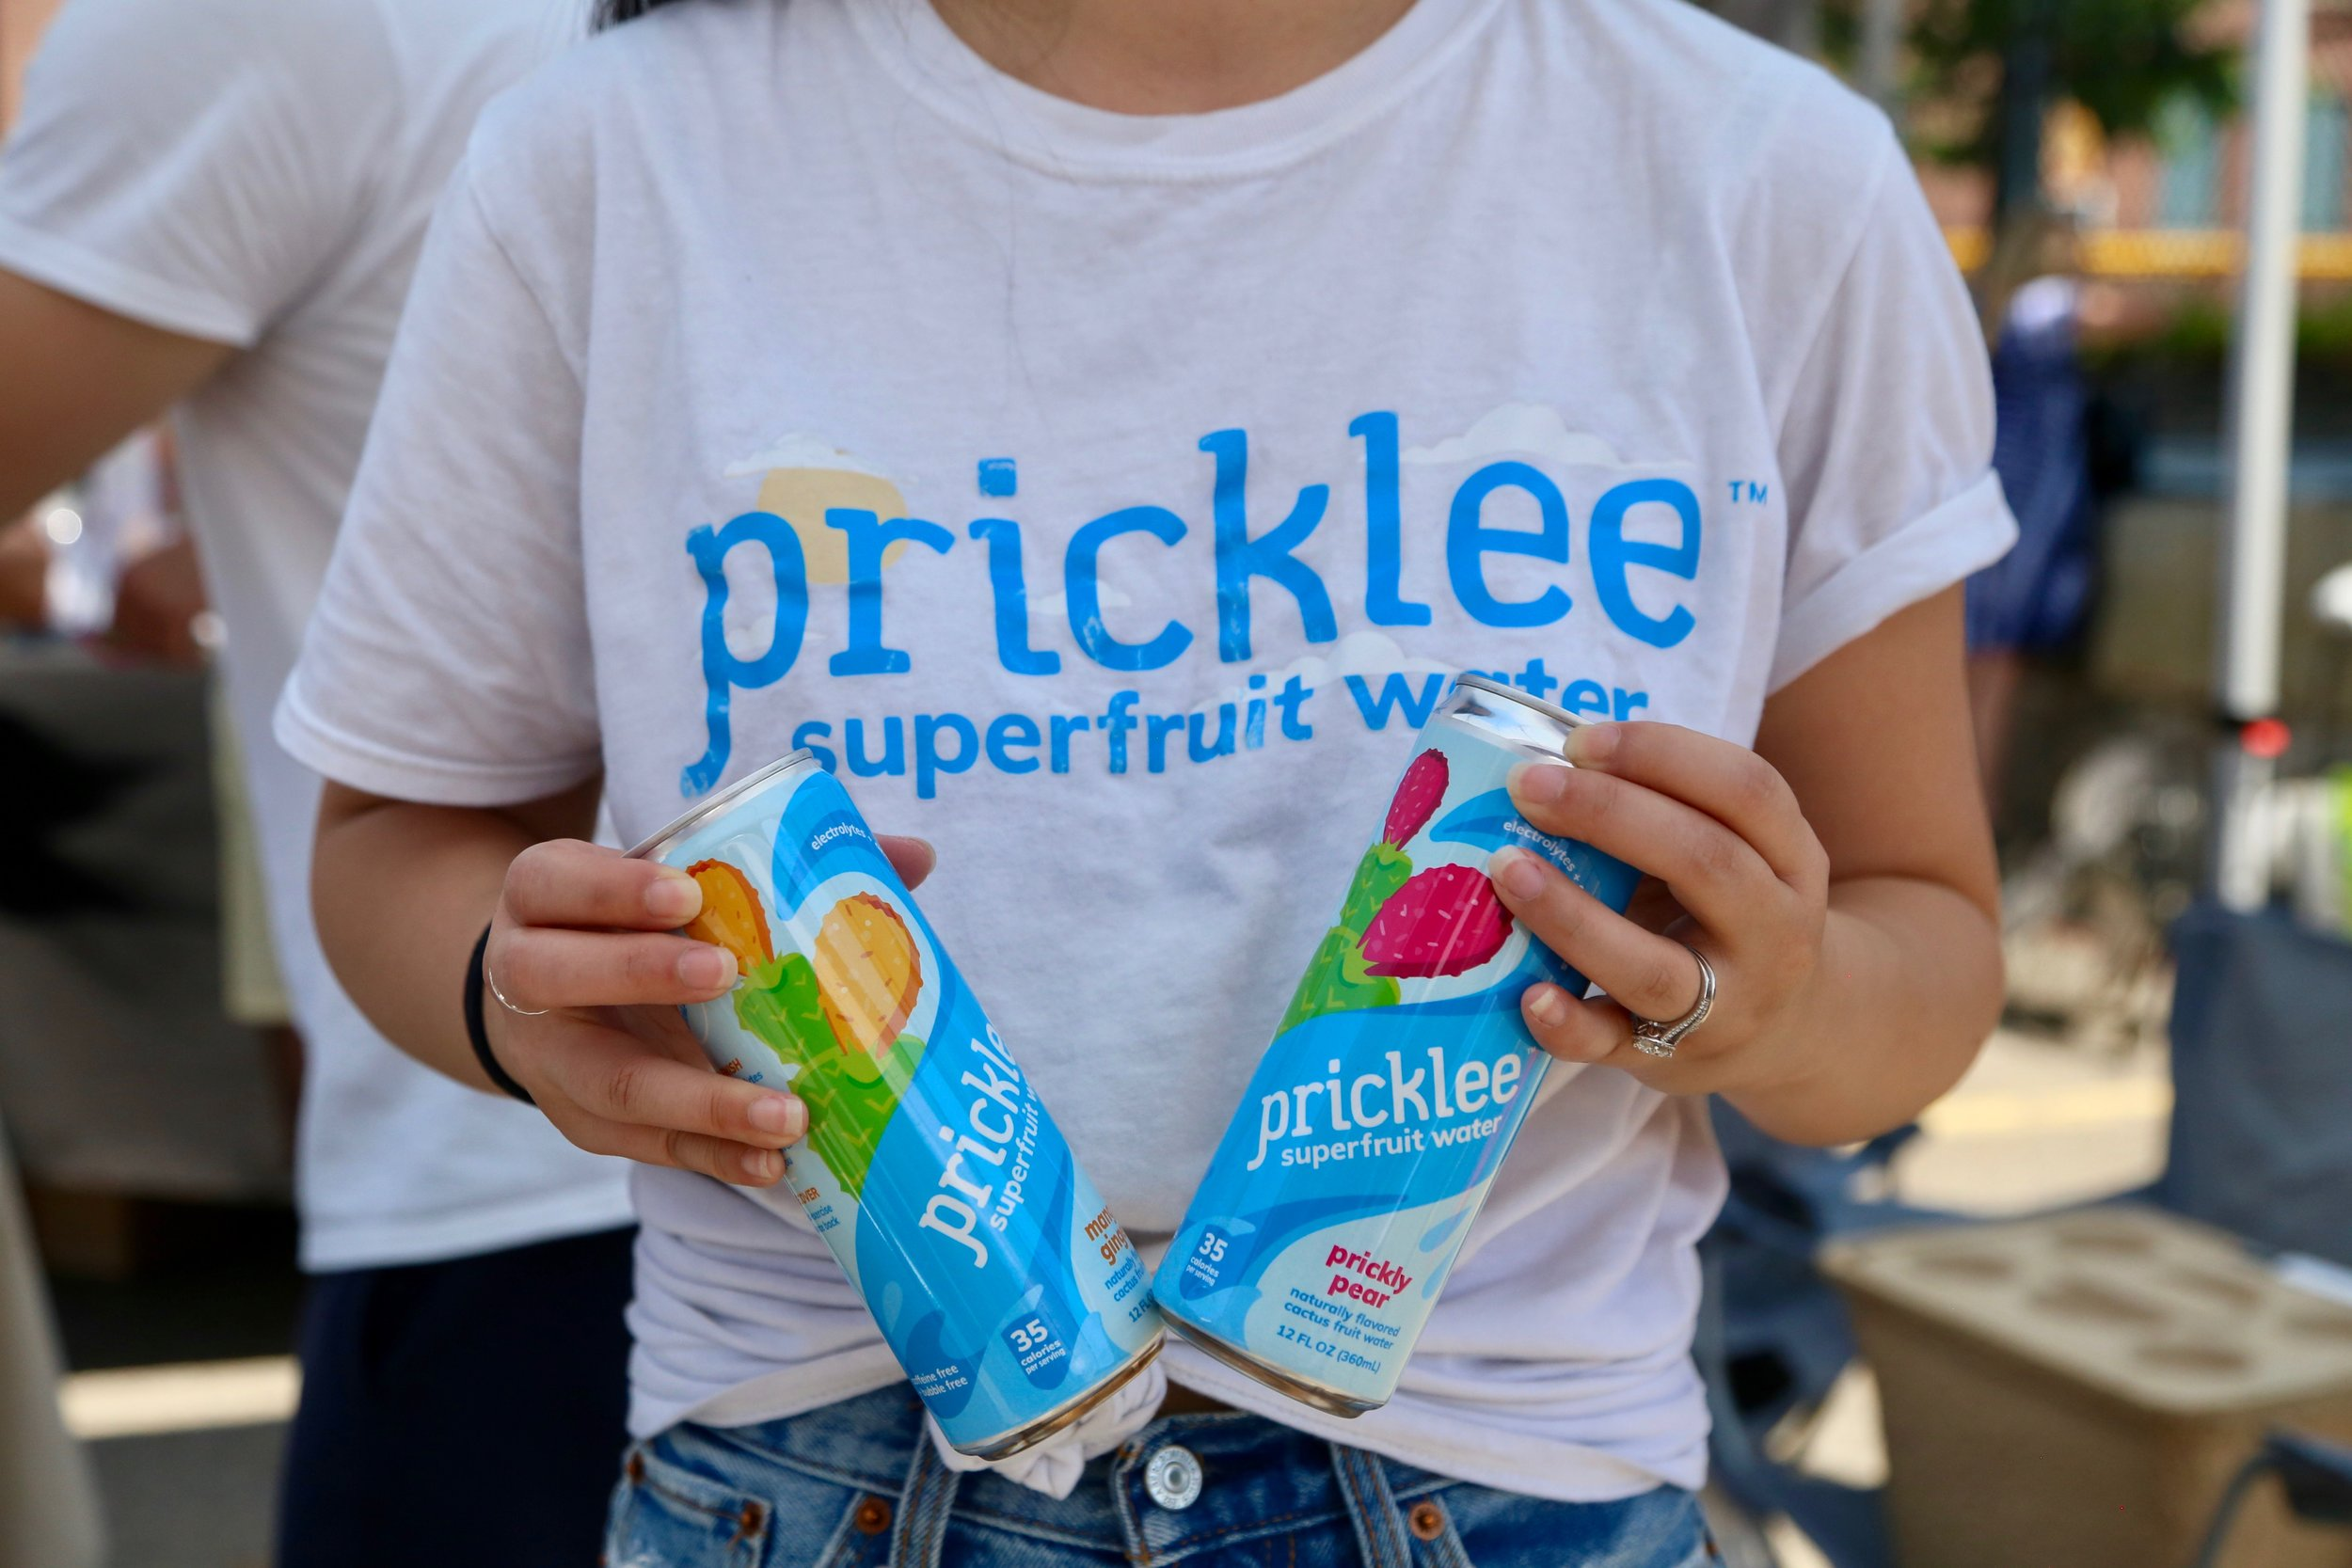 Pricklee - This superfruit based water is plant based, gluten free, and light on calories. A perfect refreshing option to sip on all summer long.